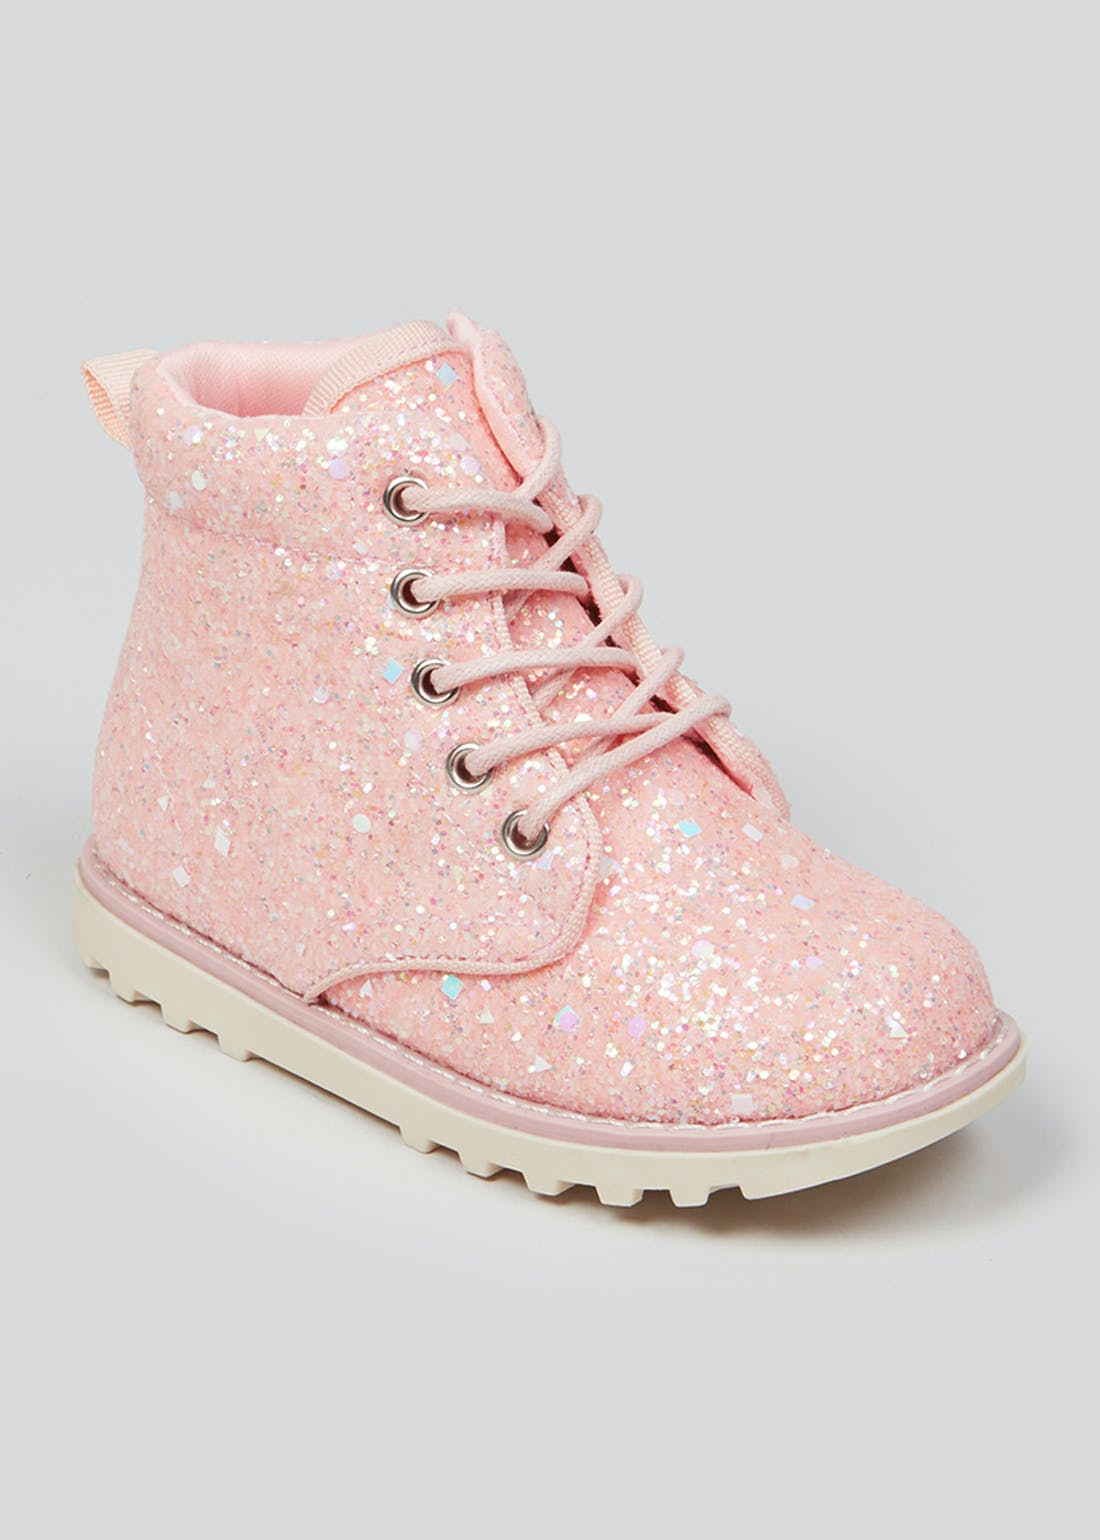 Girls Pink Glitter Ankle Boots (Younger 4-12)